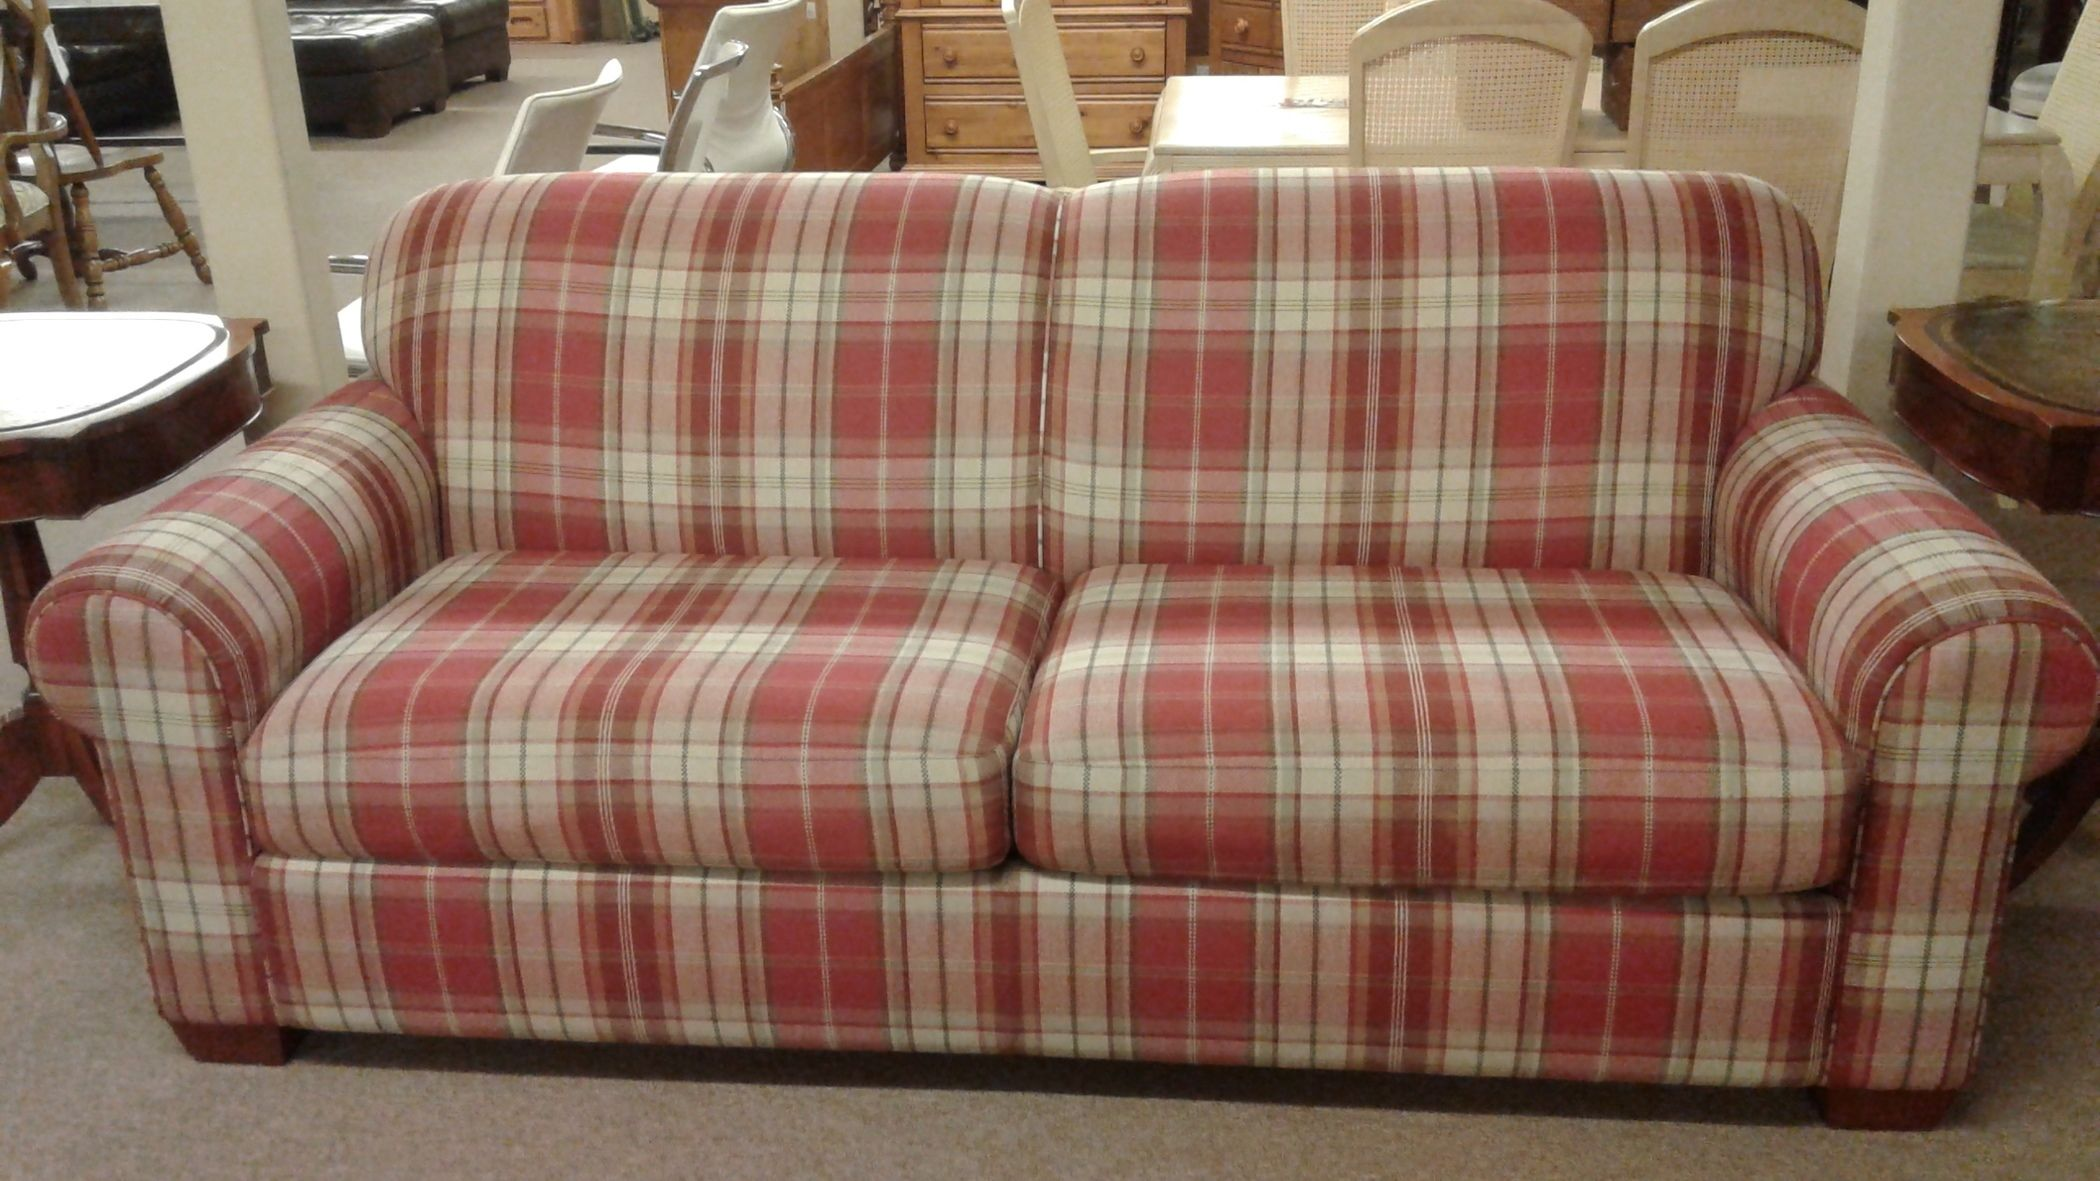 Plaid Sofa Cedaredge Plaid Sofa Pine Ridge Green Fabric Dcg Stores